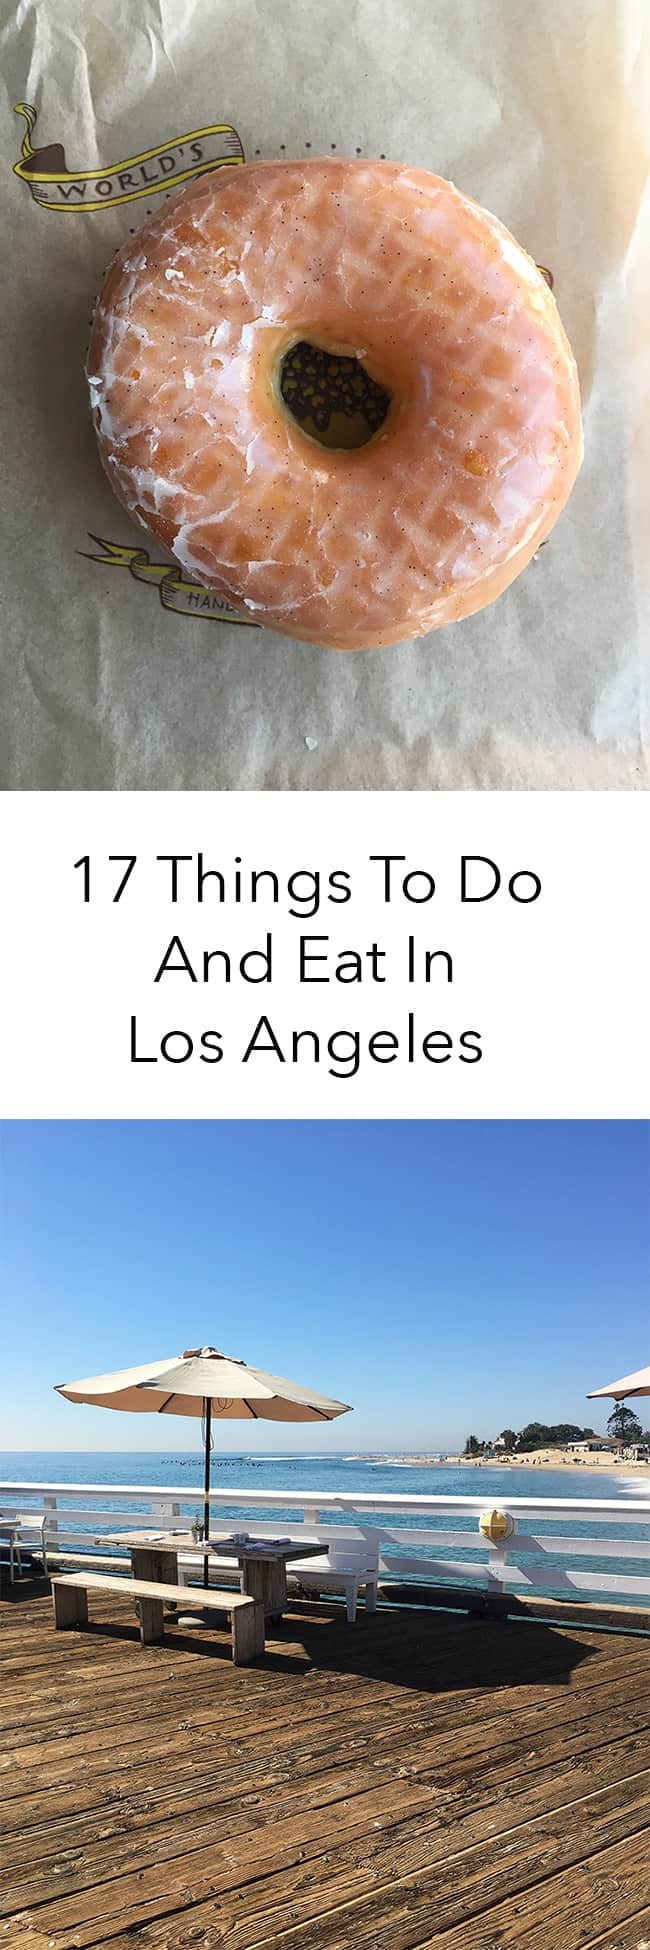 17 Things to do and eat in Los Angeles